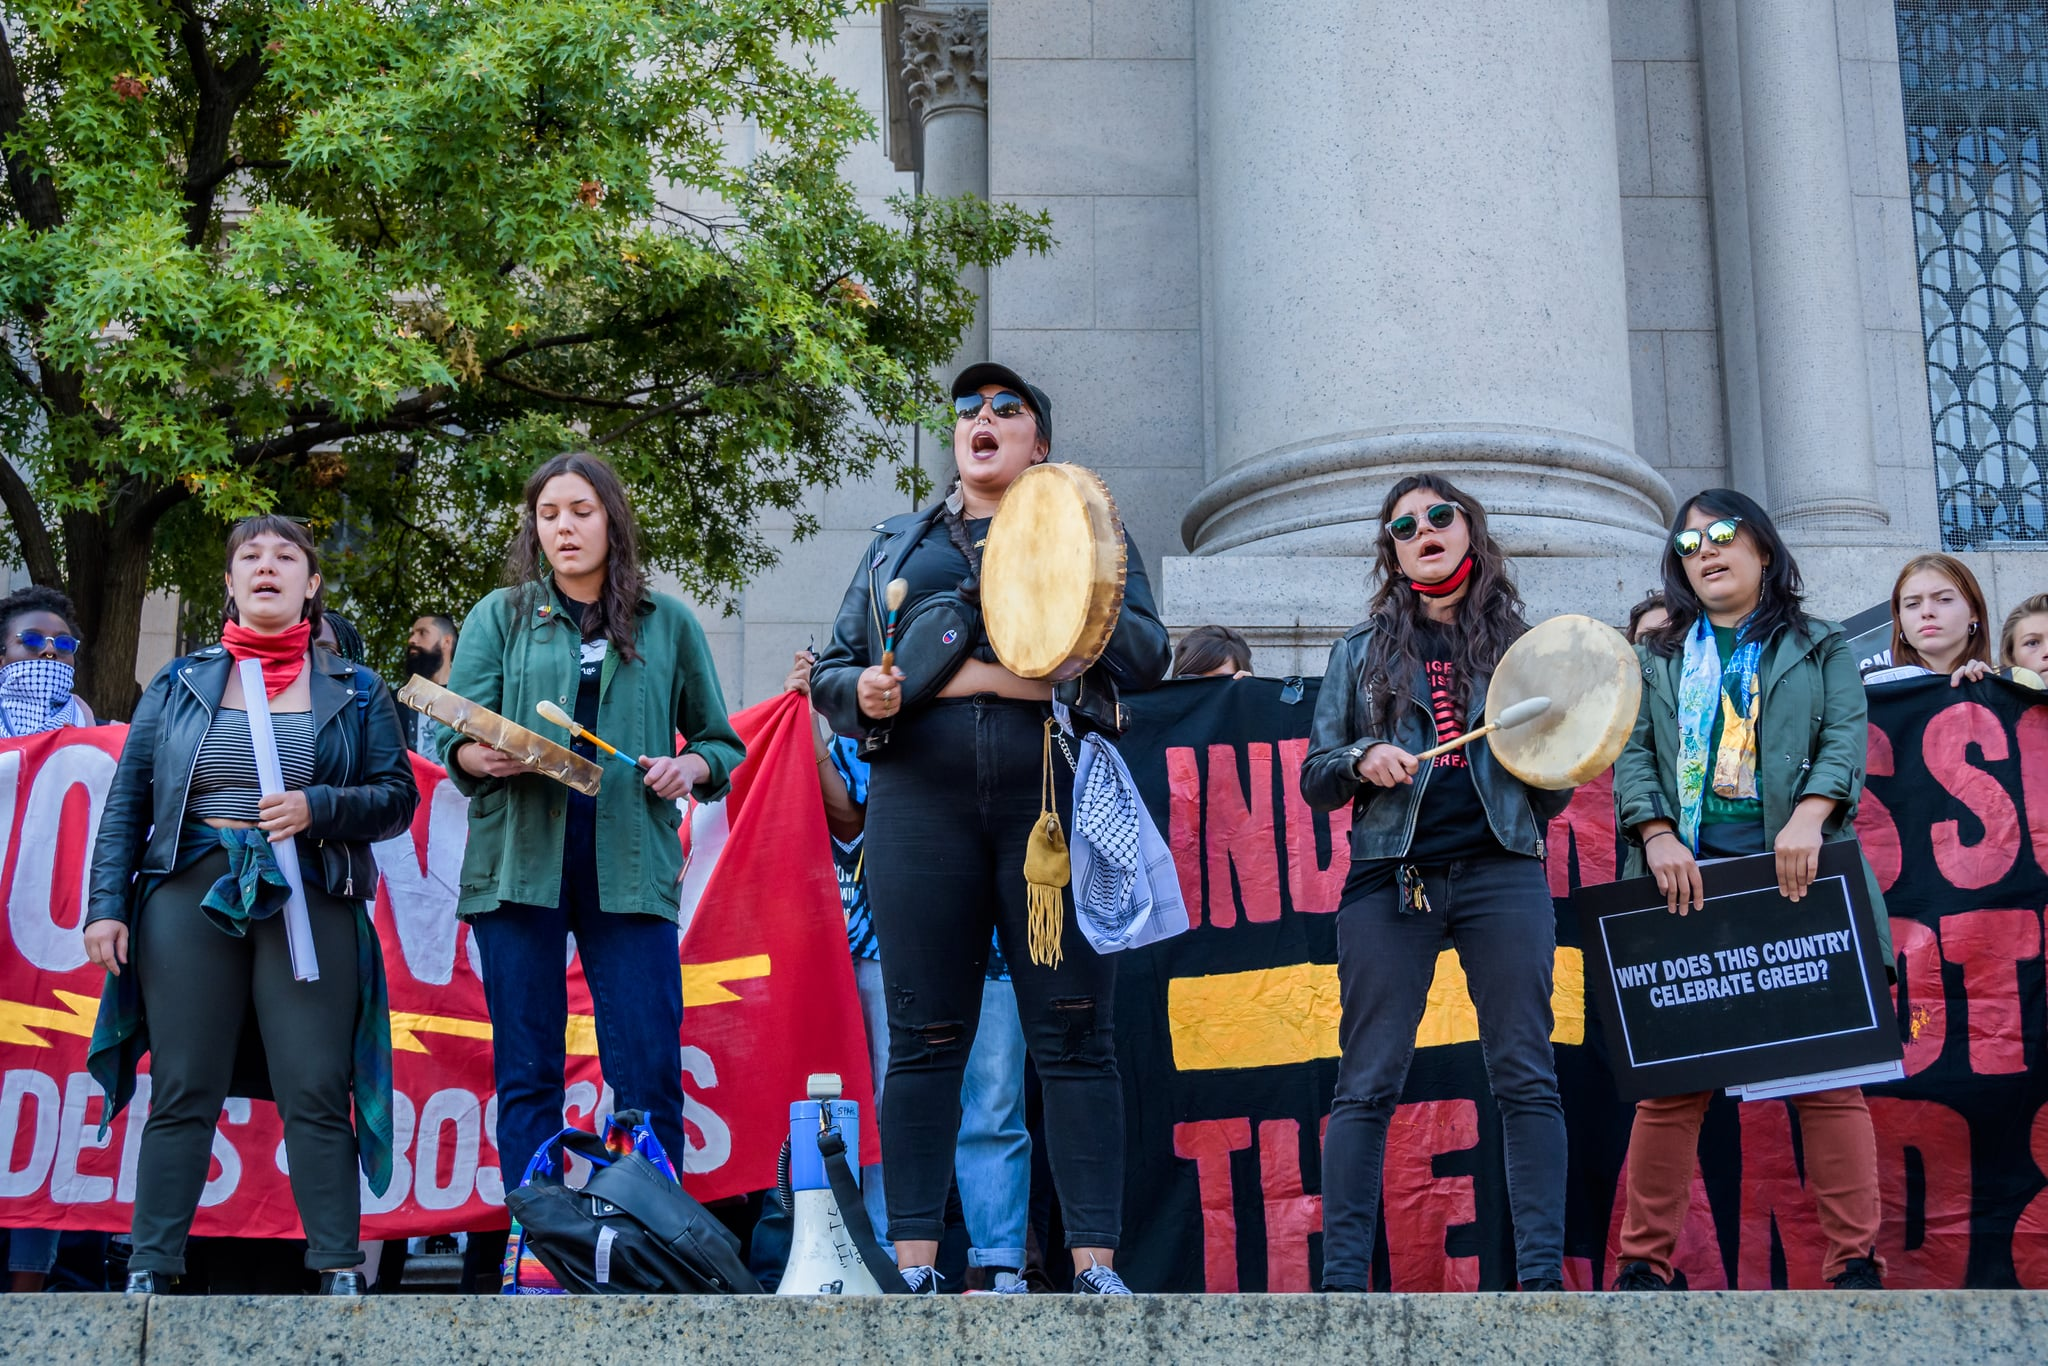 MANHATTAN, NEW YORK, UNITED STATES - 2019/10/14: Native Americans sharing a song with the crowd at the rally outside the American Museum of Natural History. Activist group Decolonize This Place and a citywide coalition of grassroots groups organized the fourth Anti-Columbus Day tour. The tour began at the Roosevelt Monument, and took to the streets moving into the city at large, joining together the movements for Decolonization, Abolition, Anti-Gentrification, and Demilitarization. (Photo by Erik McGregor/LightRocket via Getty Images)